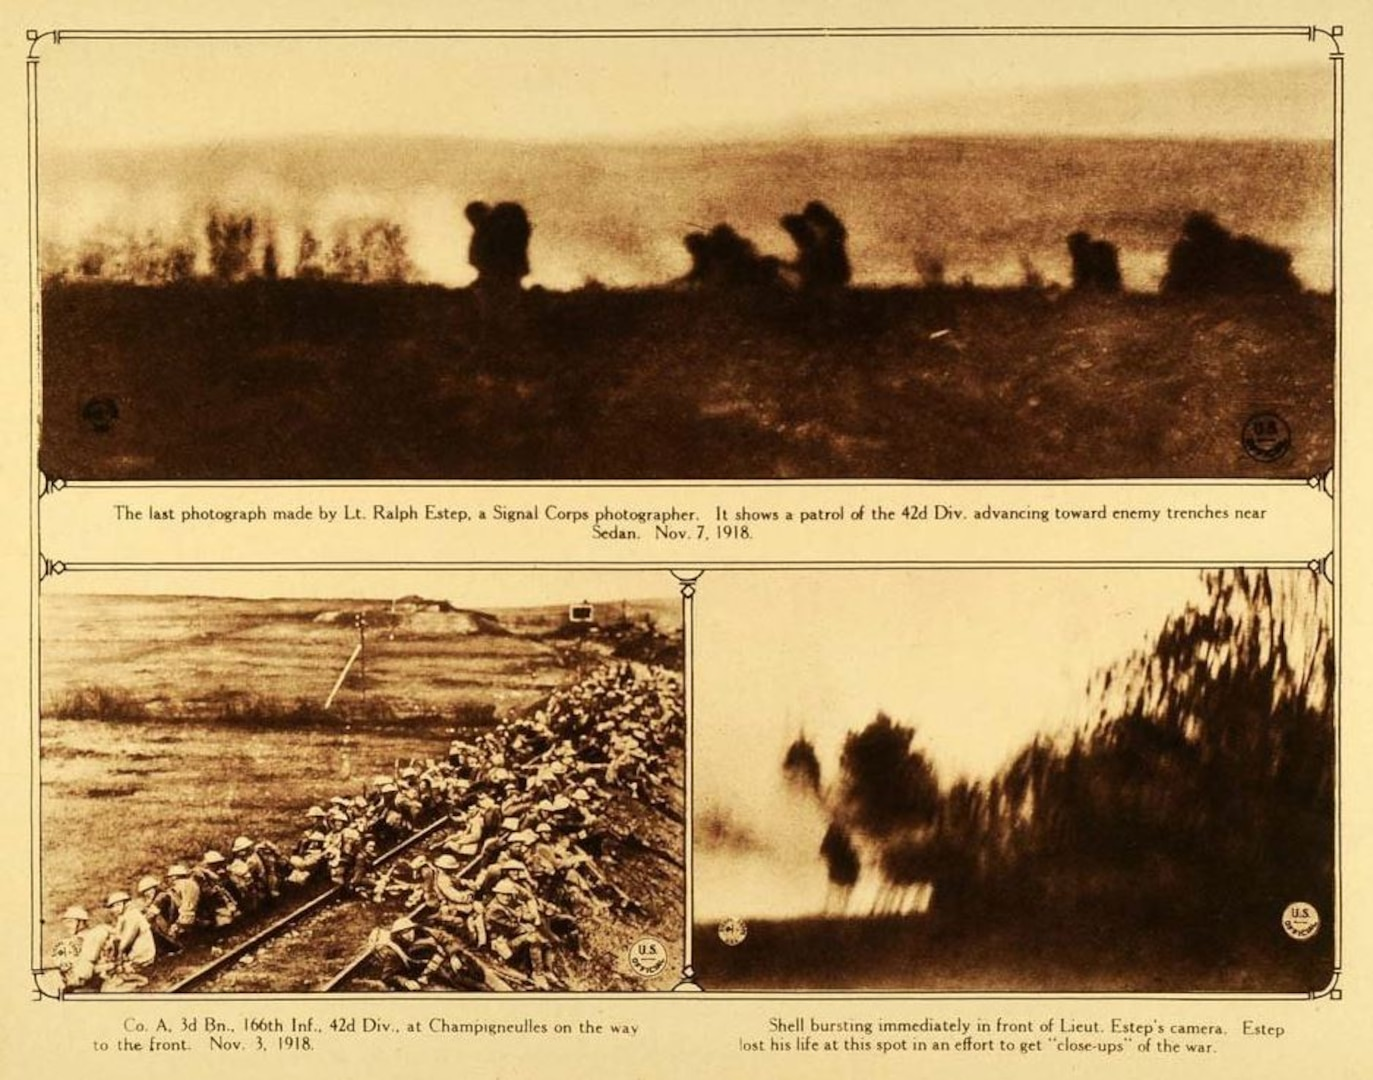 A montage of several of 1st Lt. Ralph E. Estep's final photos, taken in the moments before he was killed in action Nov. 7, 1918, near Sedan, France. (U.S. Army photos by 1st Lt. Ralph E. Estep)